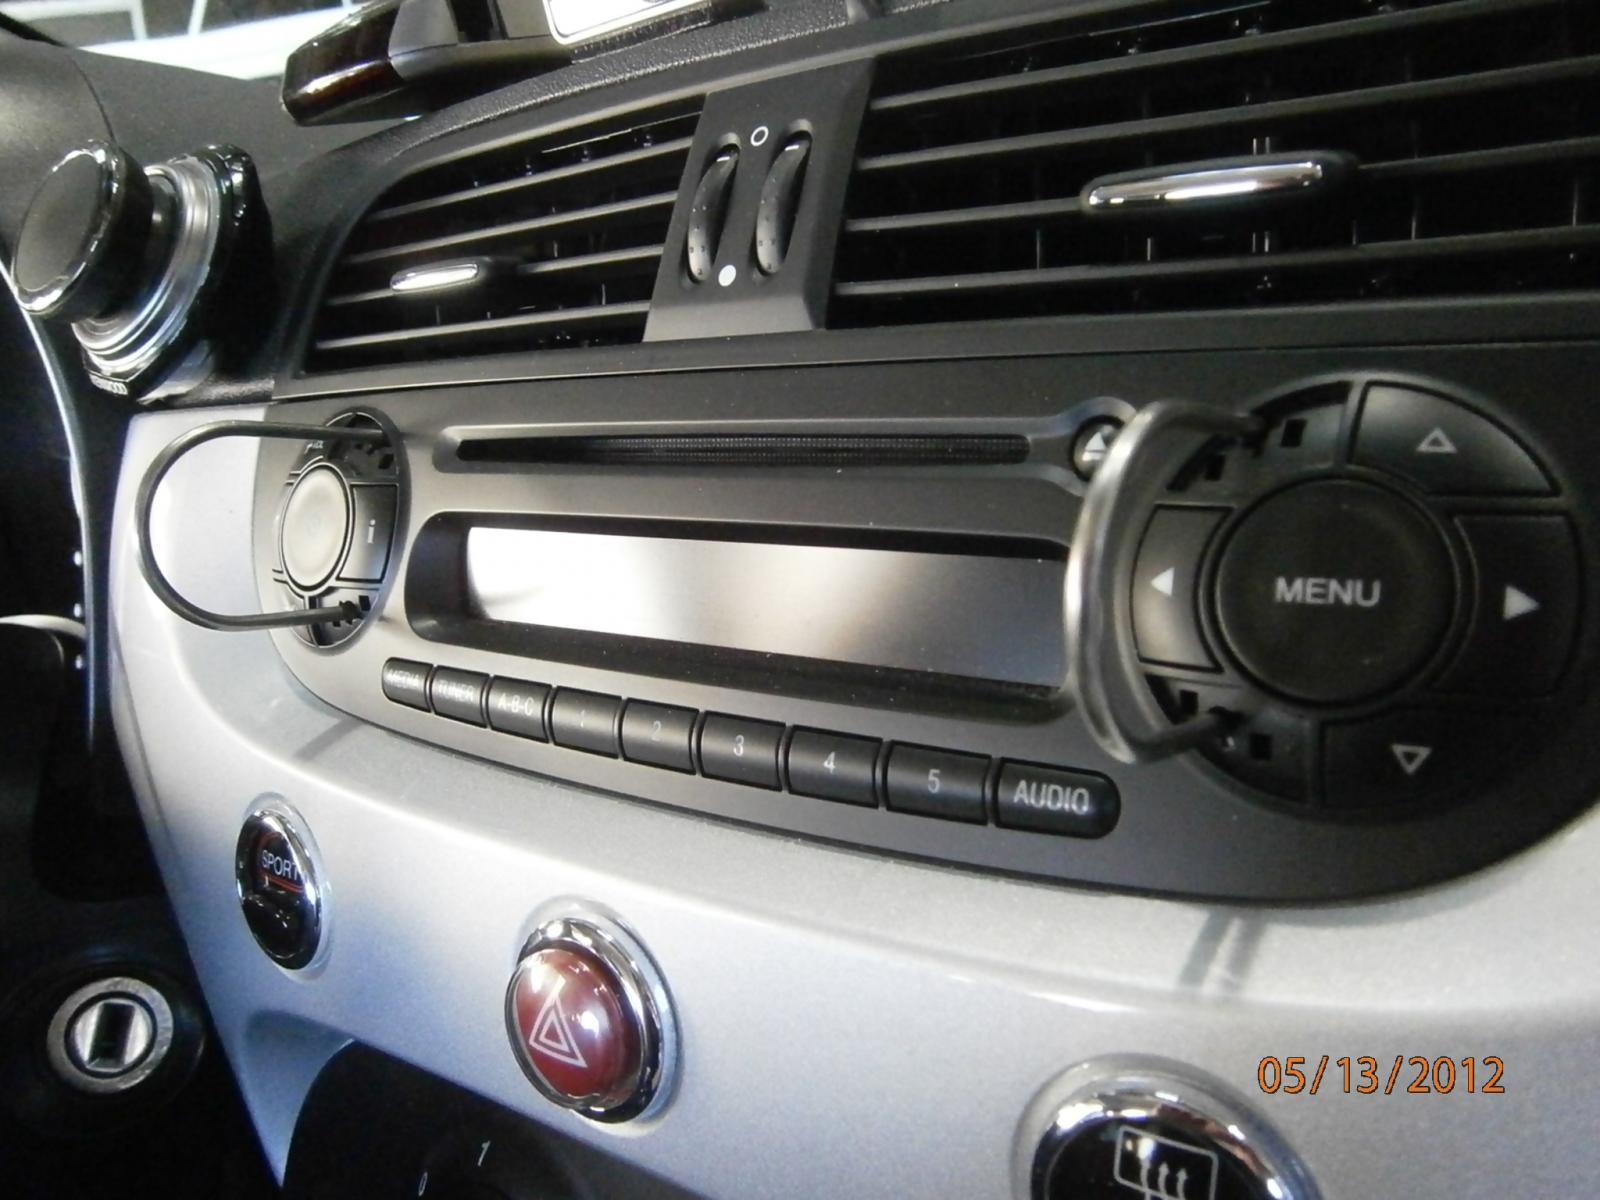 2012 fiat 500 radio removal by troy audi0 fiat 500 diy. Black Bedroom Furniture Sets. Home Design Ideas